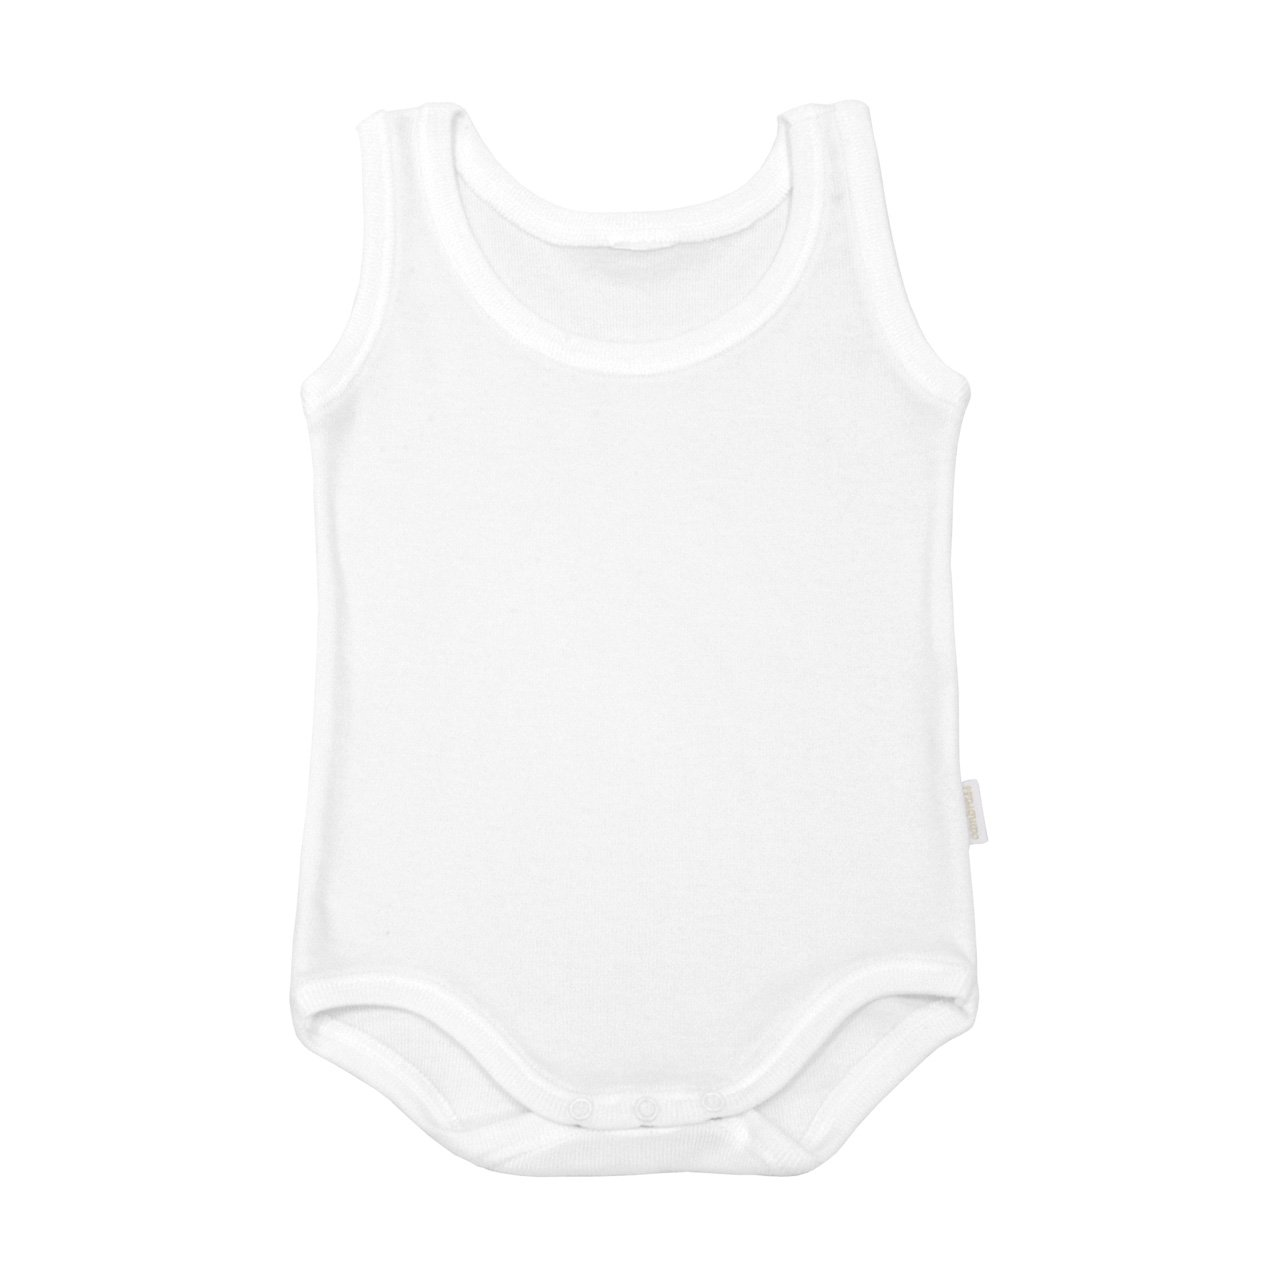 White, 12-18 Months Cambrass Sleeveless Tricot Bodysuit